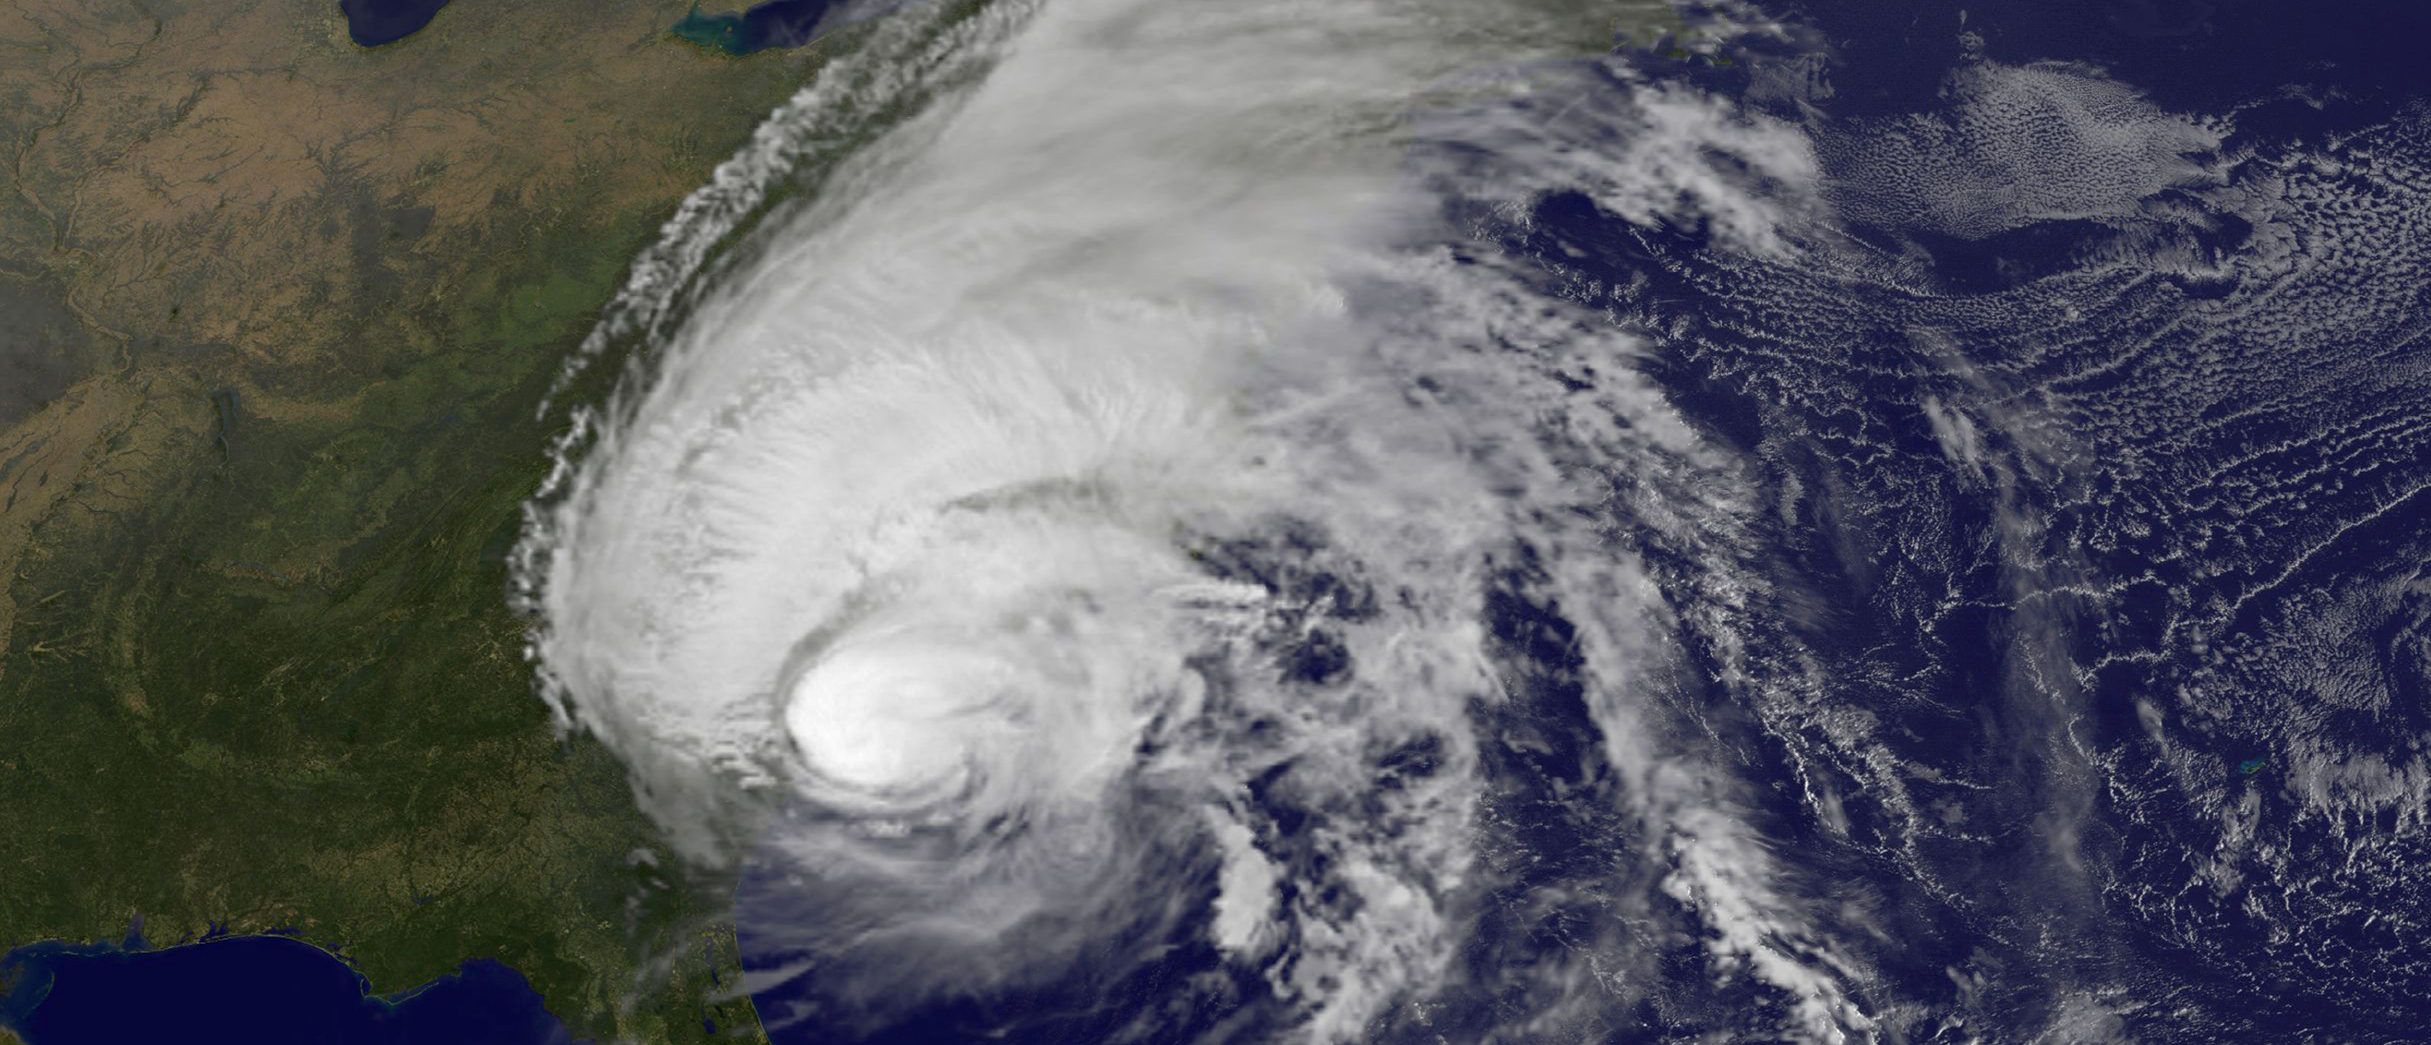 FILE PHOTO - Hurricane Matthew is pictured along the southeastern U.S. coast by NASA's NOAA's GOES-East satellite at 7:45 a.m. EDT on on October 8, 2016. Courtesy NASA/NOAA GOES Project/Handout via REUTERS ATTENTION EDITORS - THIS IMAGE WAS PROVIDED BY A THIRD PARTY. EDITORIAL USE ONLY. - RC110EA8ABA0